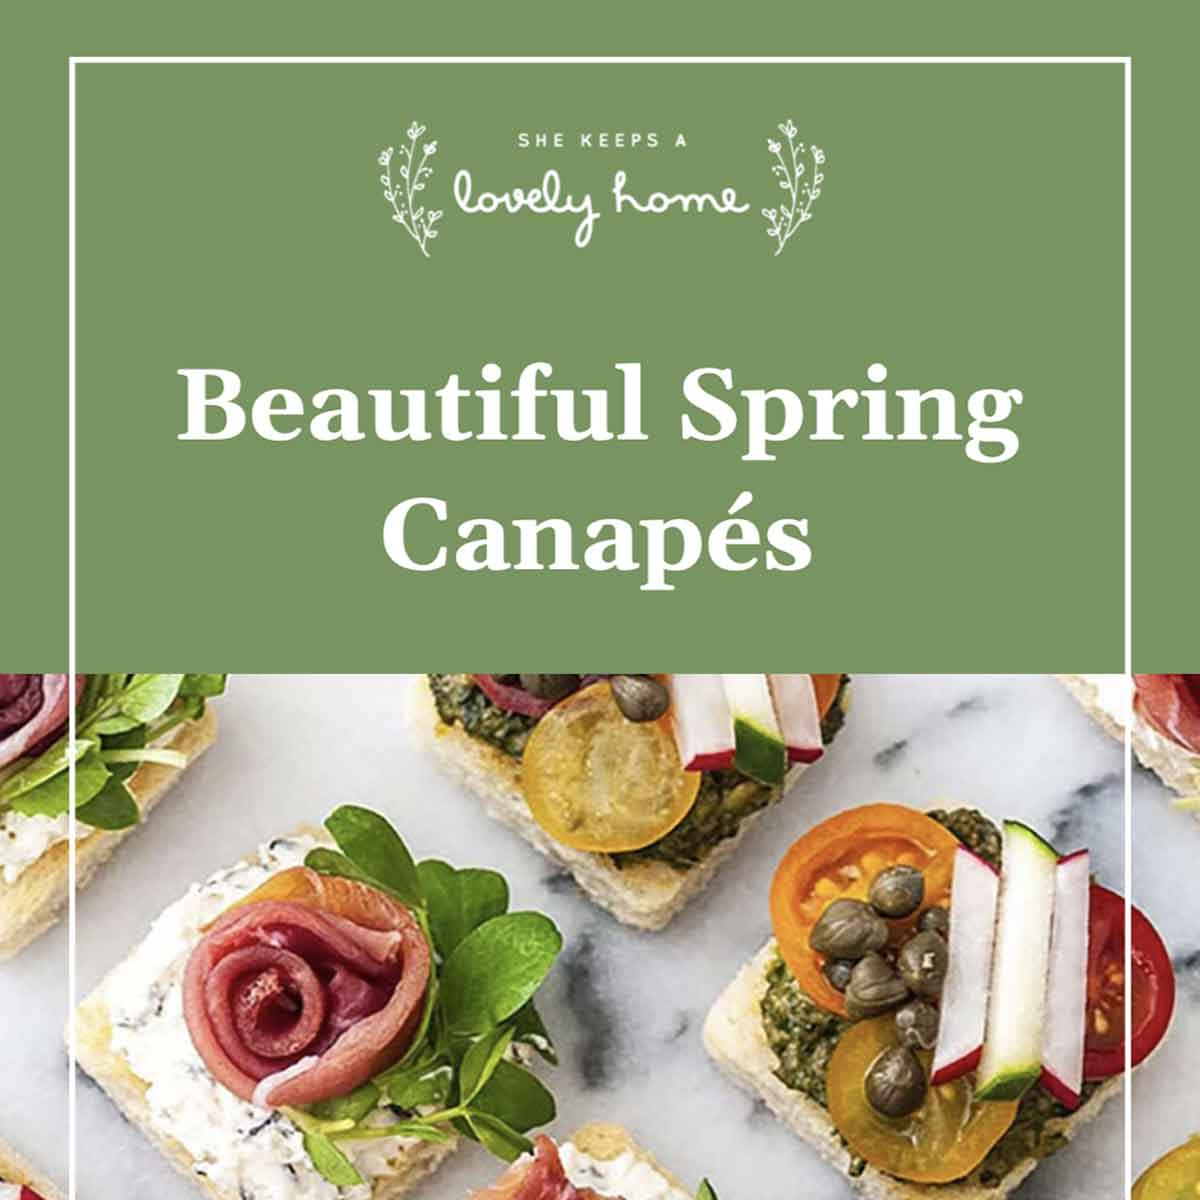 """A title that says """"Beautiful Spring Canapés"""" over an image of appetizers."""